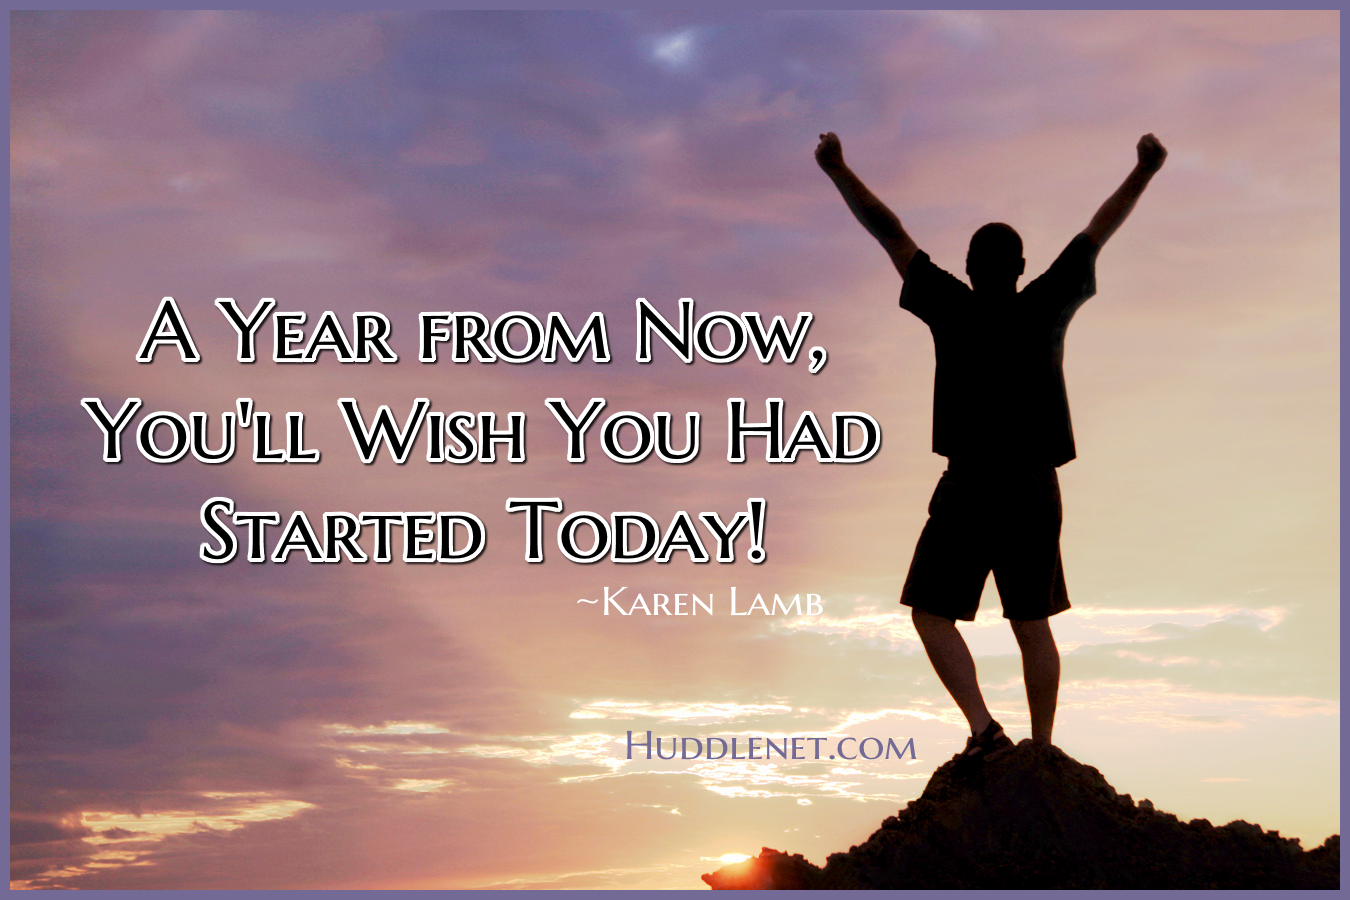 A Year from Now, You'll Wish You Had Started Today